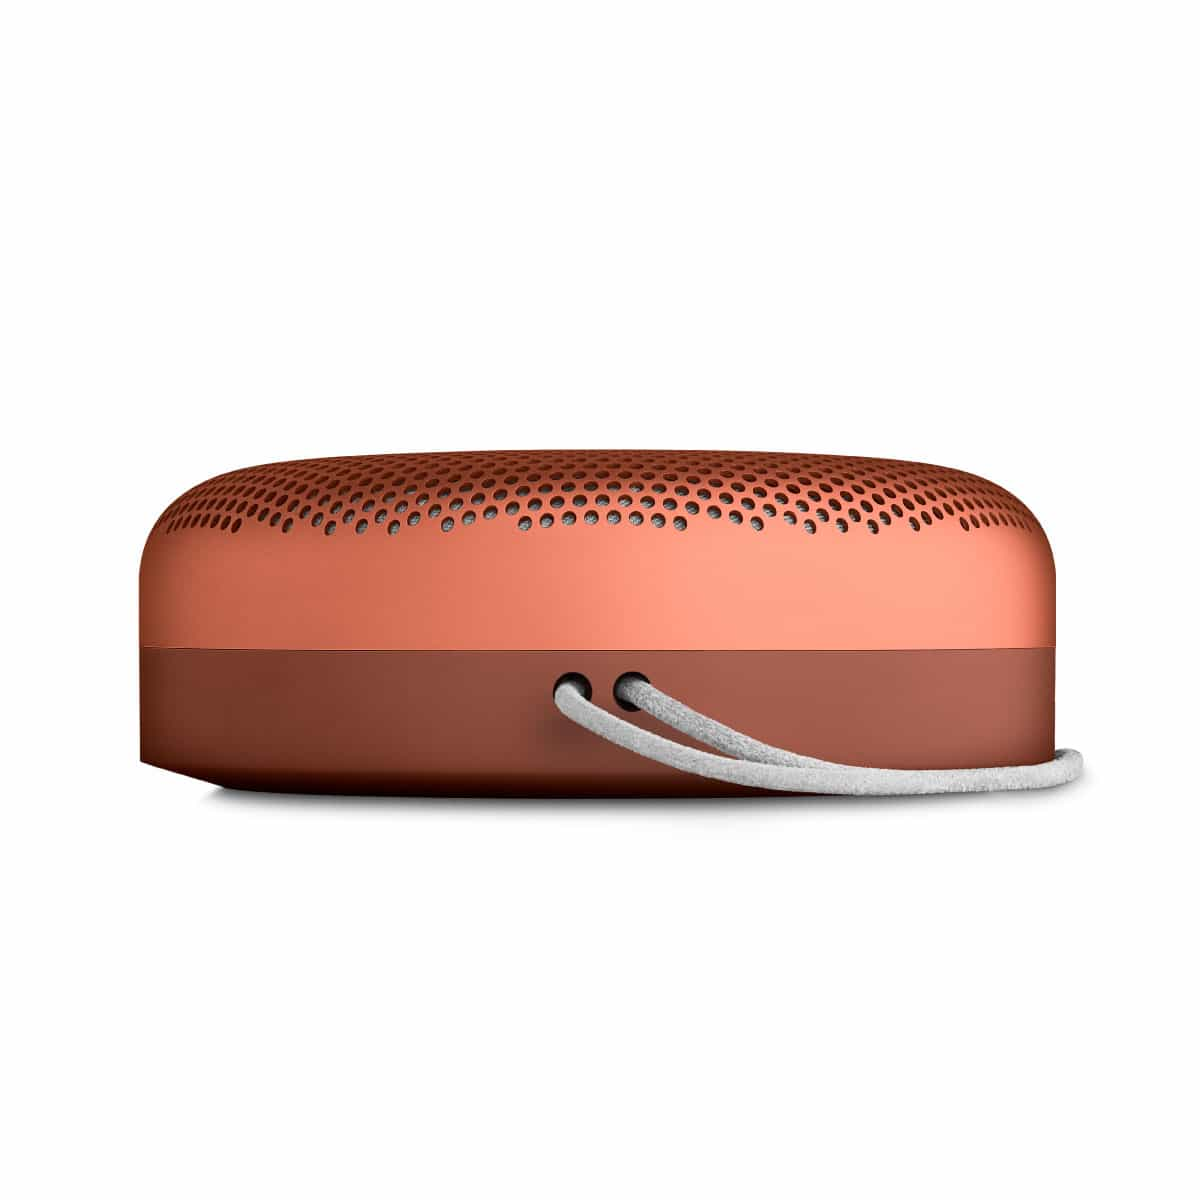 beoplay_a1-tangerineRed2